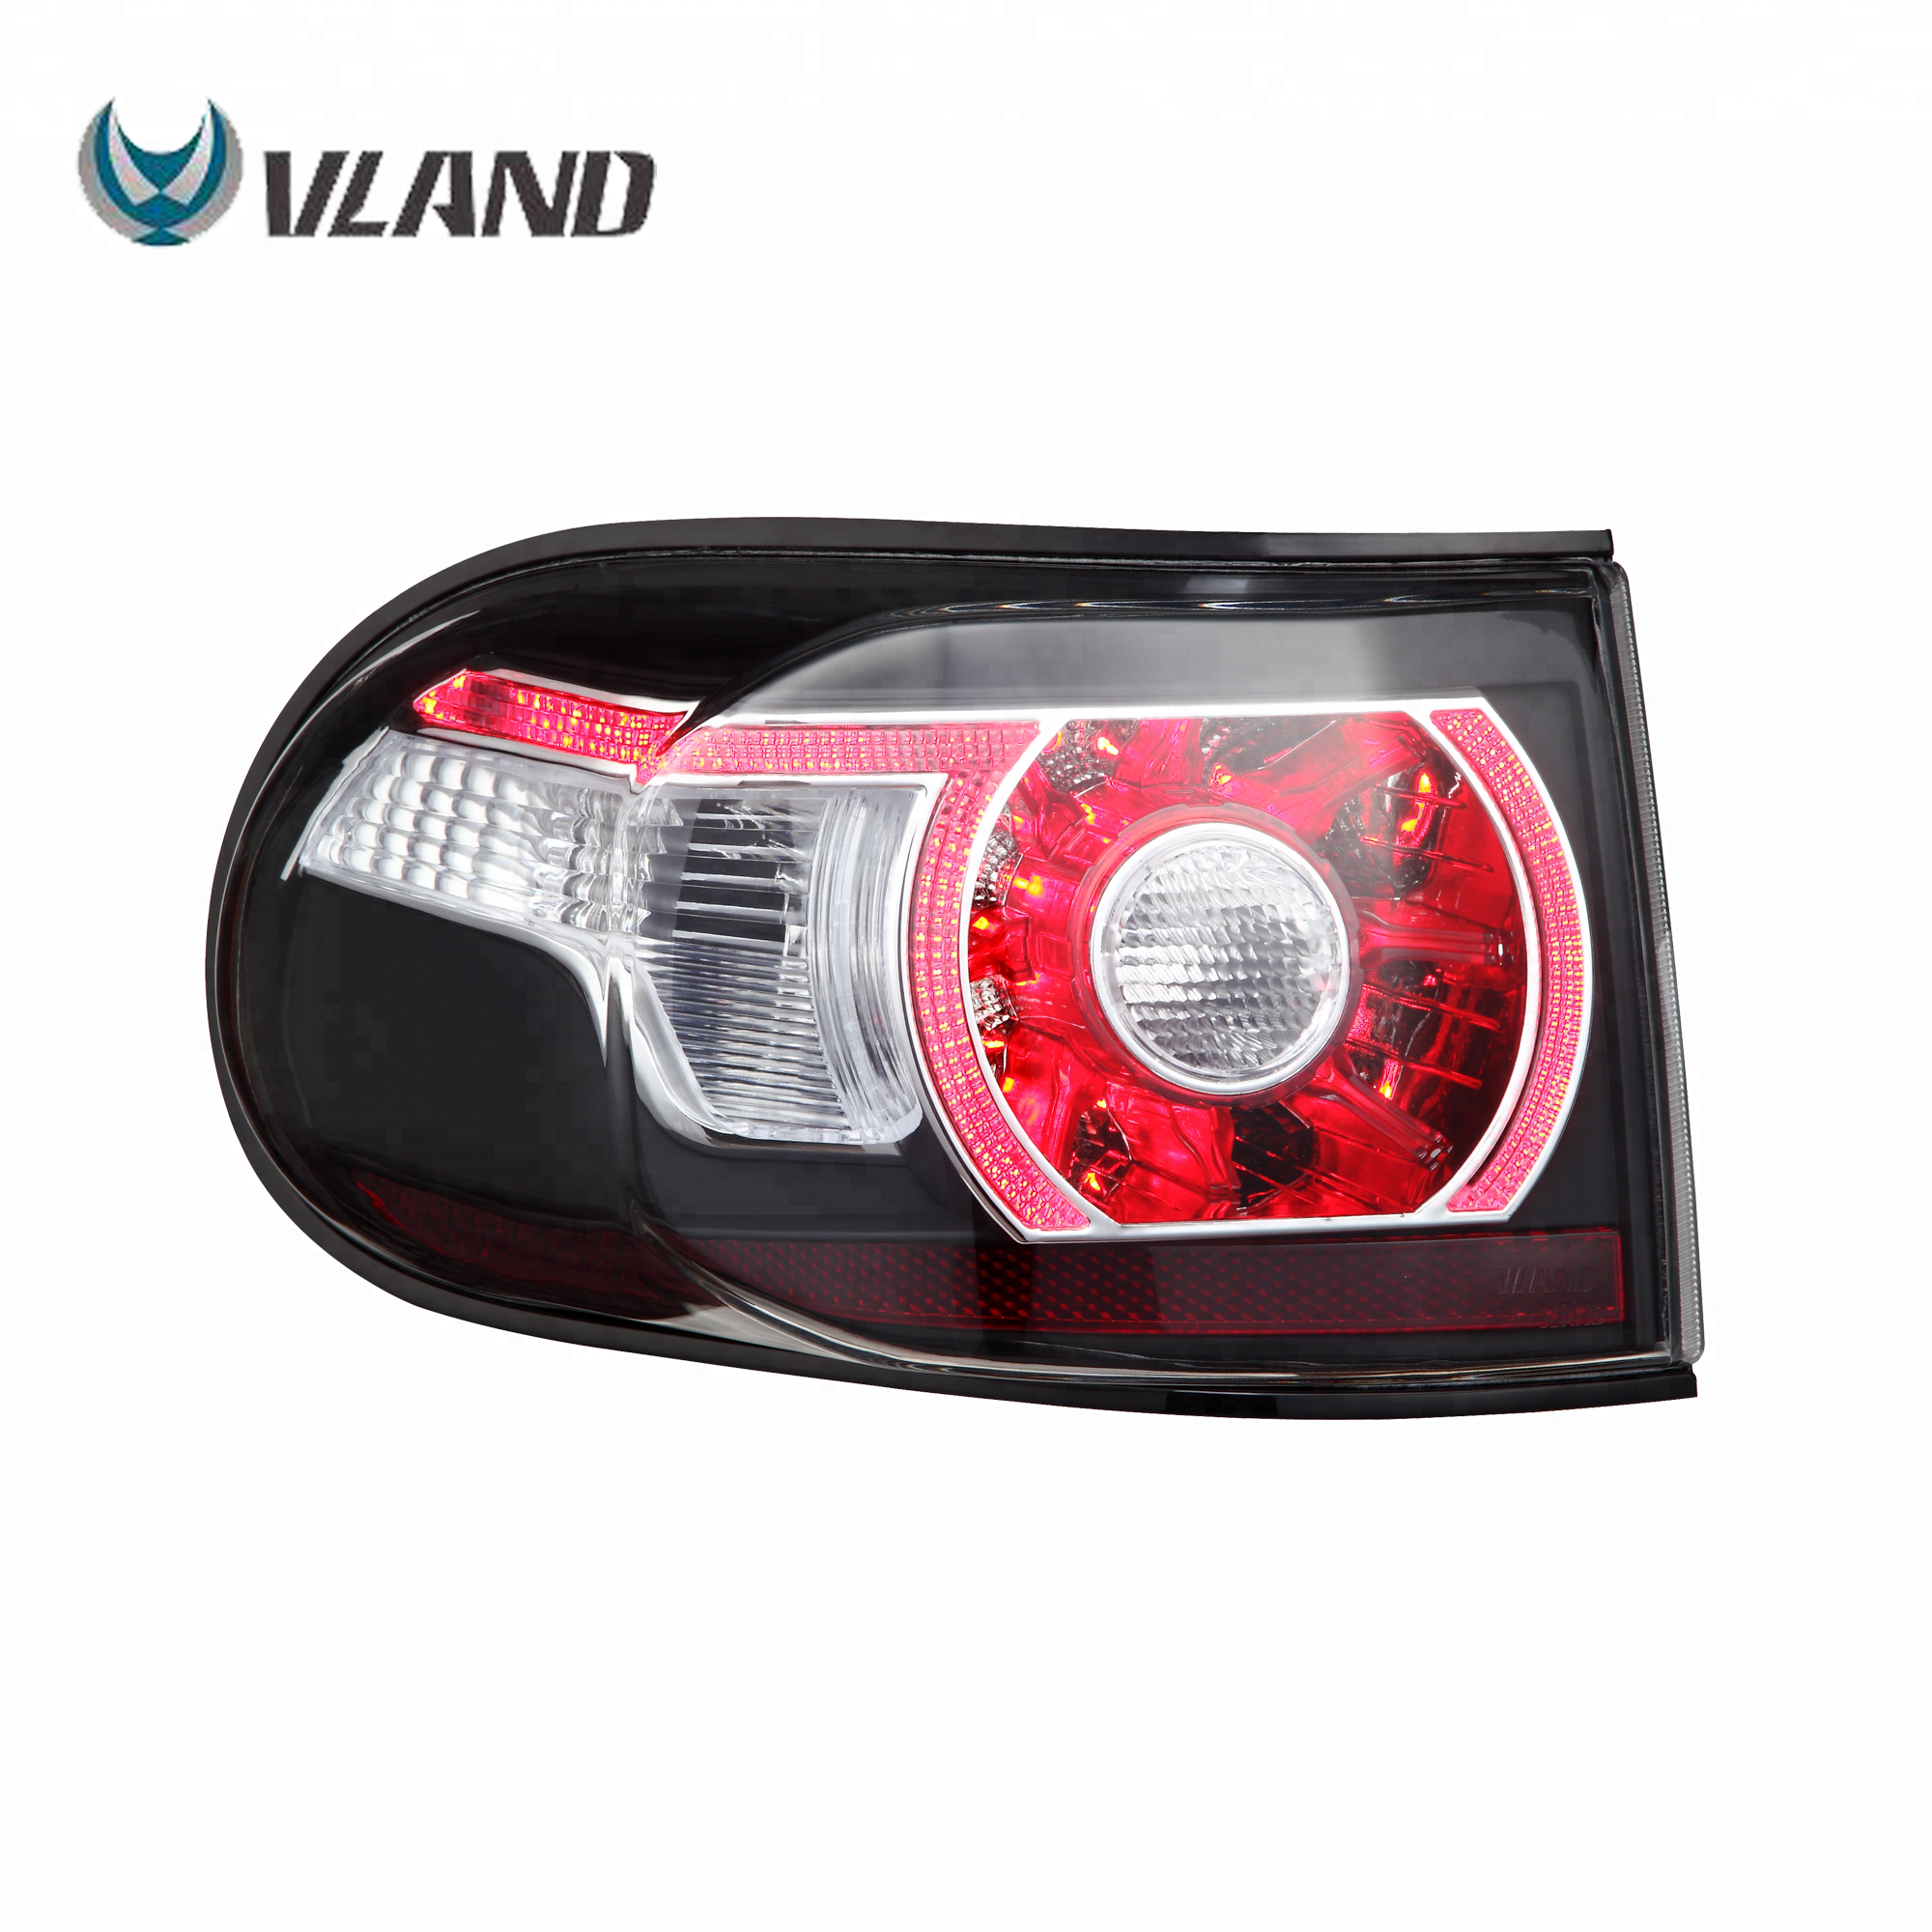 VLAND CAR LAMP LED TAILLIGHTS FOR fj cruiser 07-up tail lamp hot selling best quality manufacturers ios9001 ccc